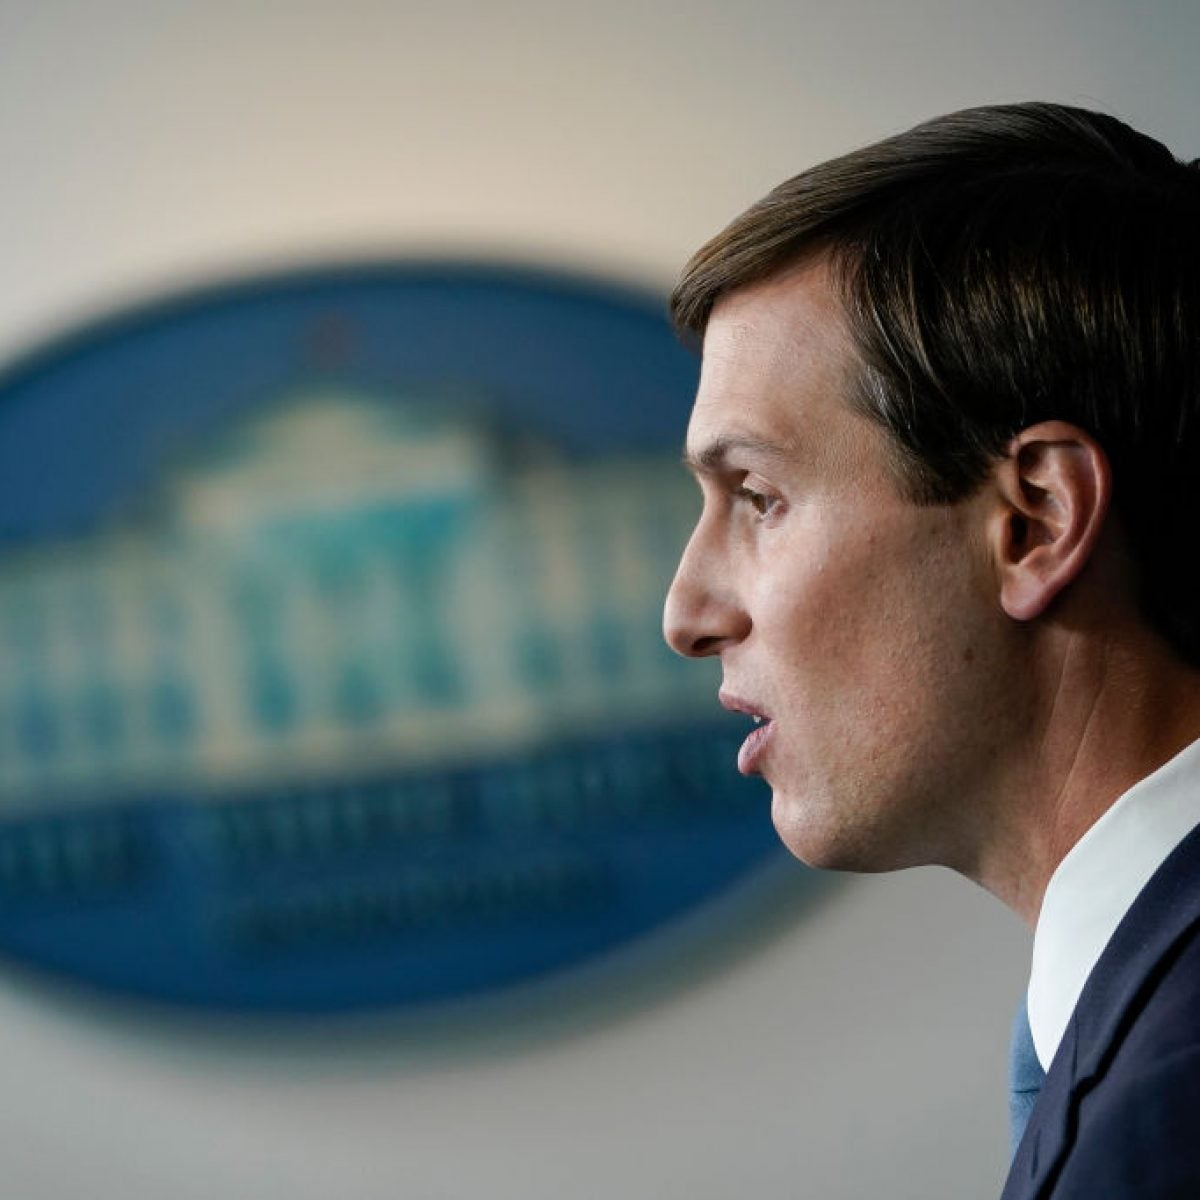 Someone Should Ask Jared Kushner About The Children He's Helping To Kill